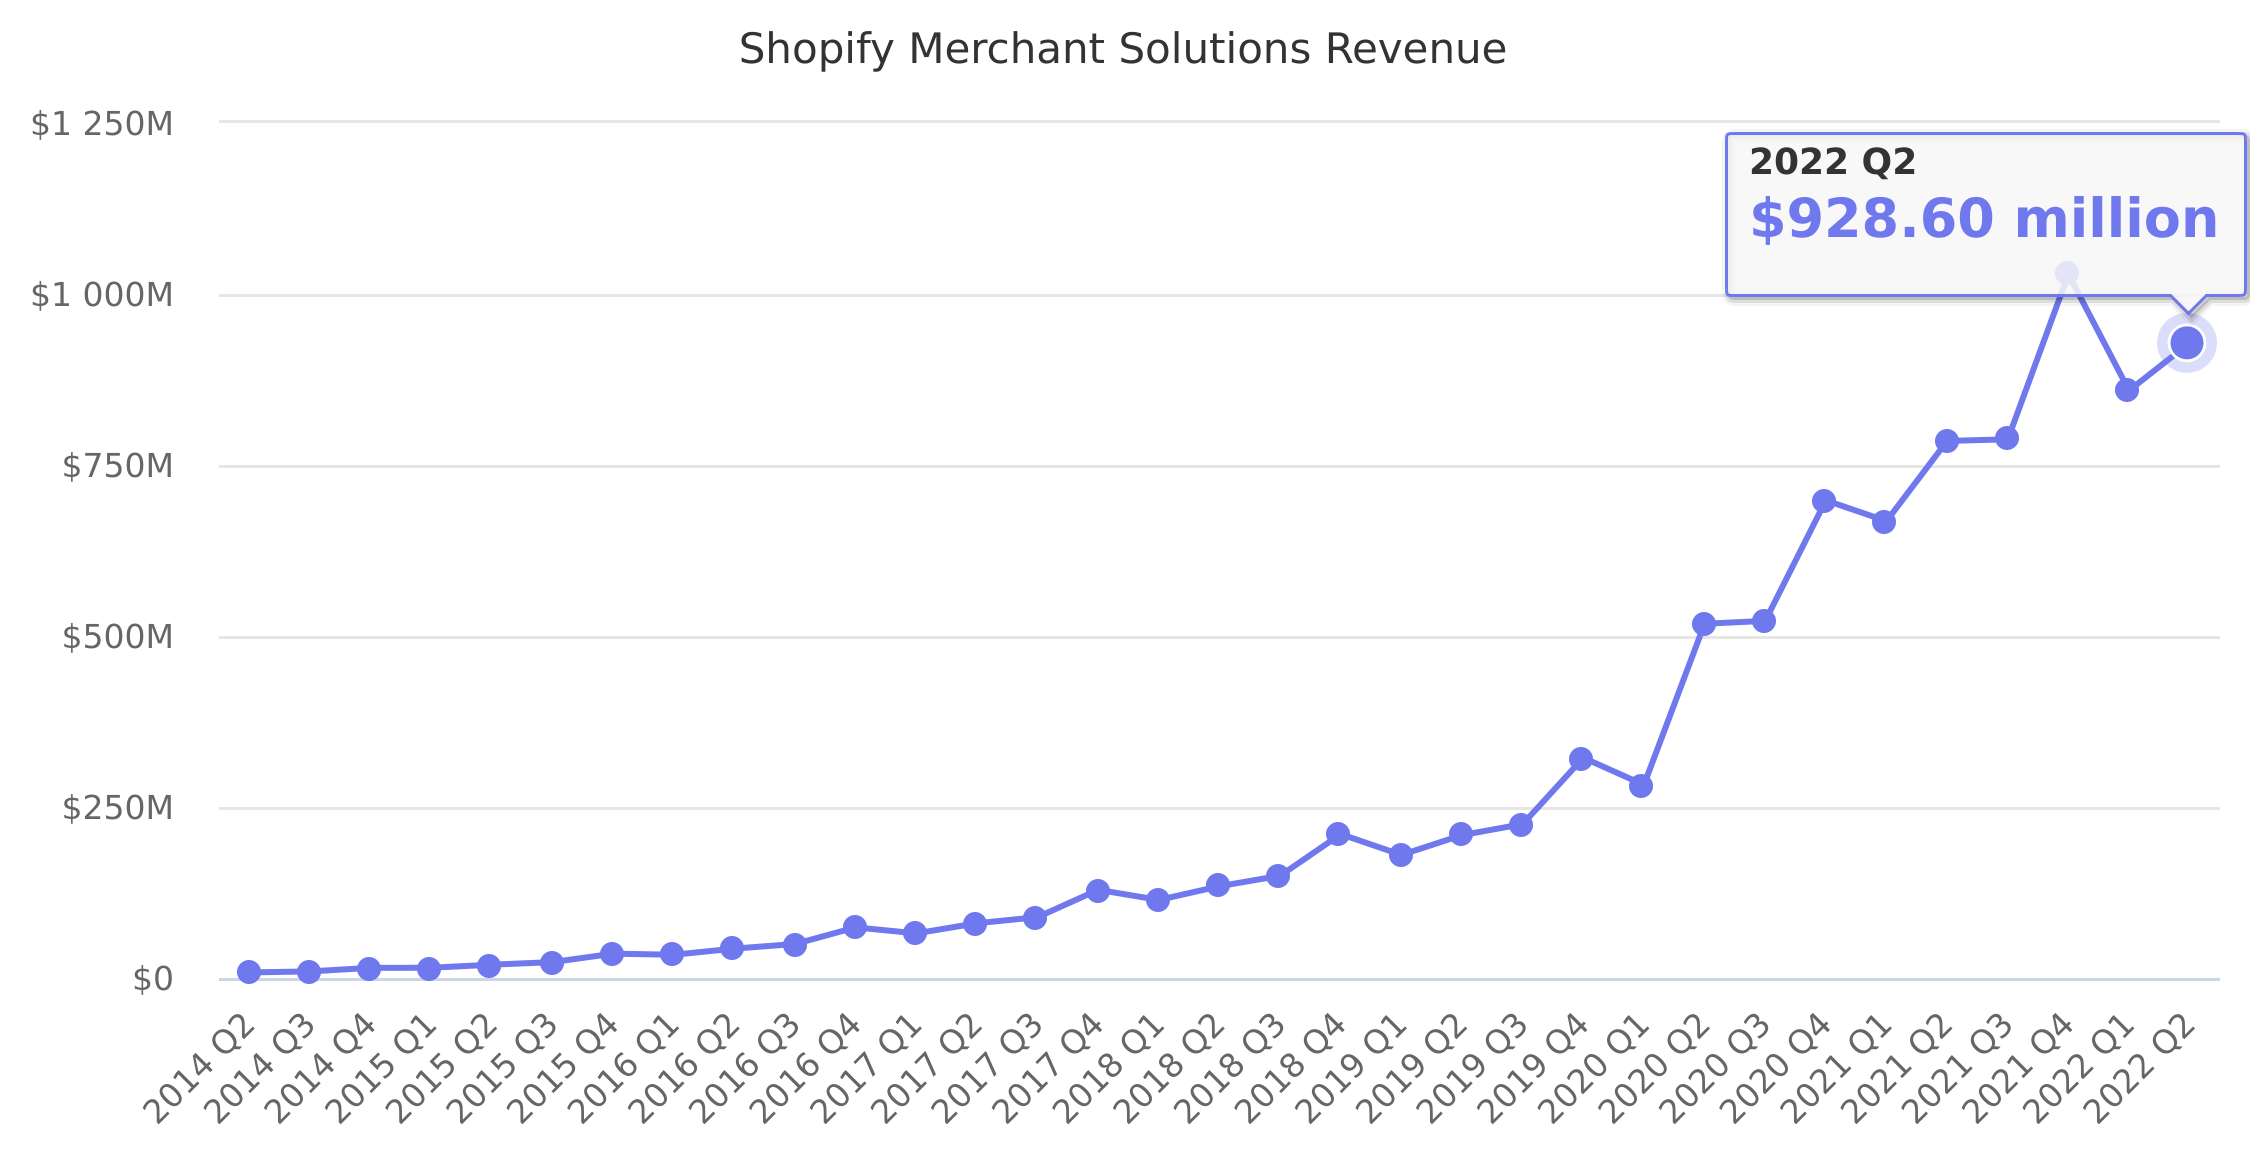 Shopify Merchant Solutions Revenue 2014-2018